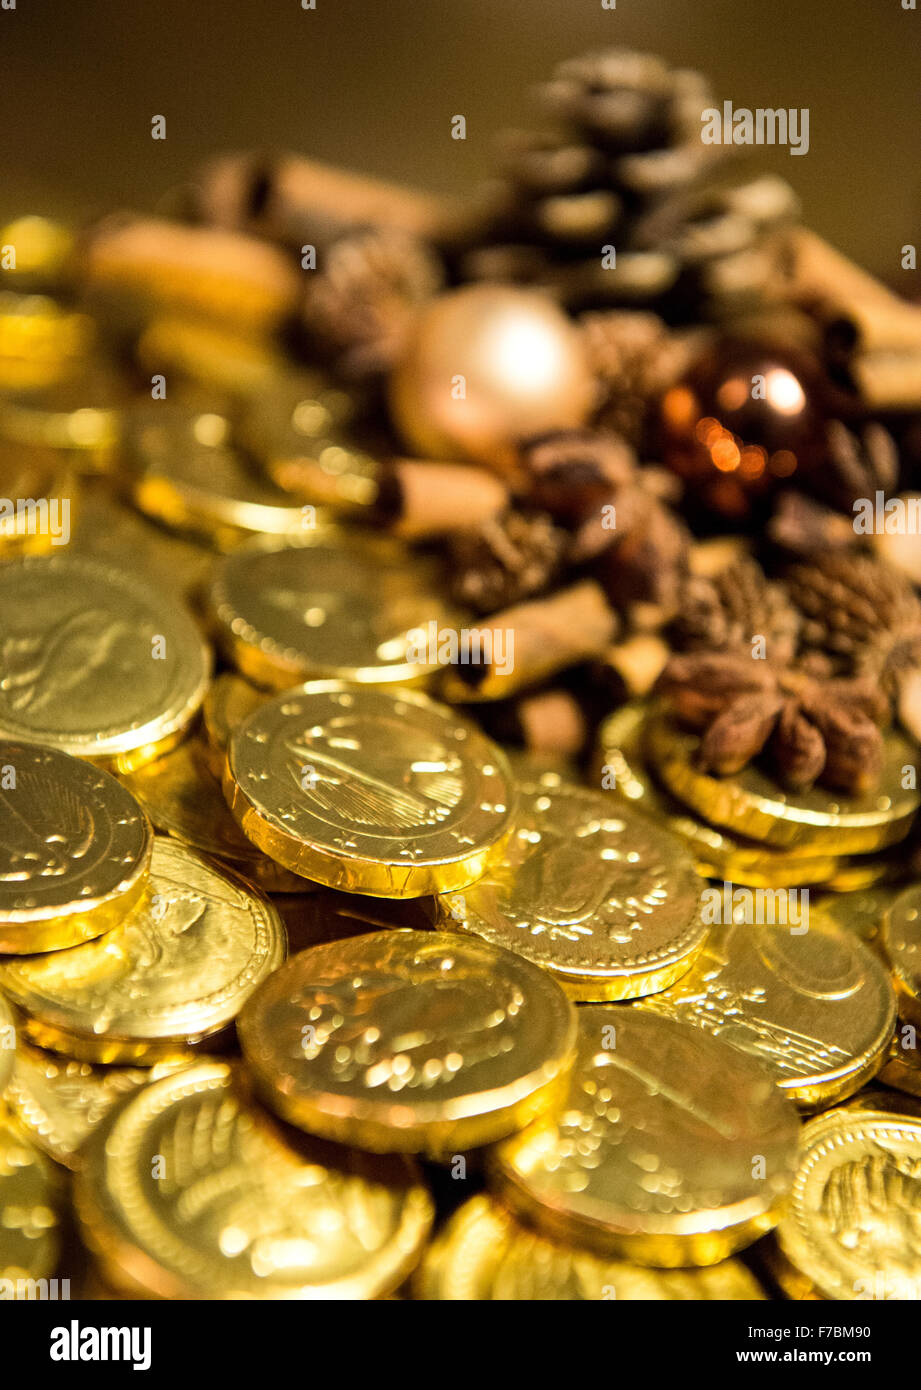 Chocolate Coins Wrapped in Foil Stock Photo, Royalty Free Image ...